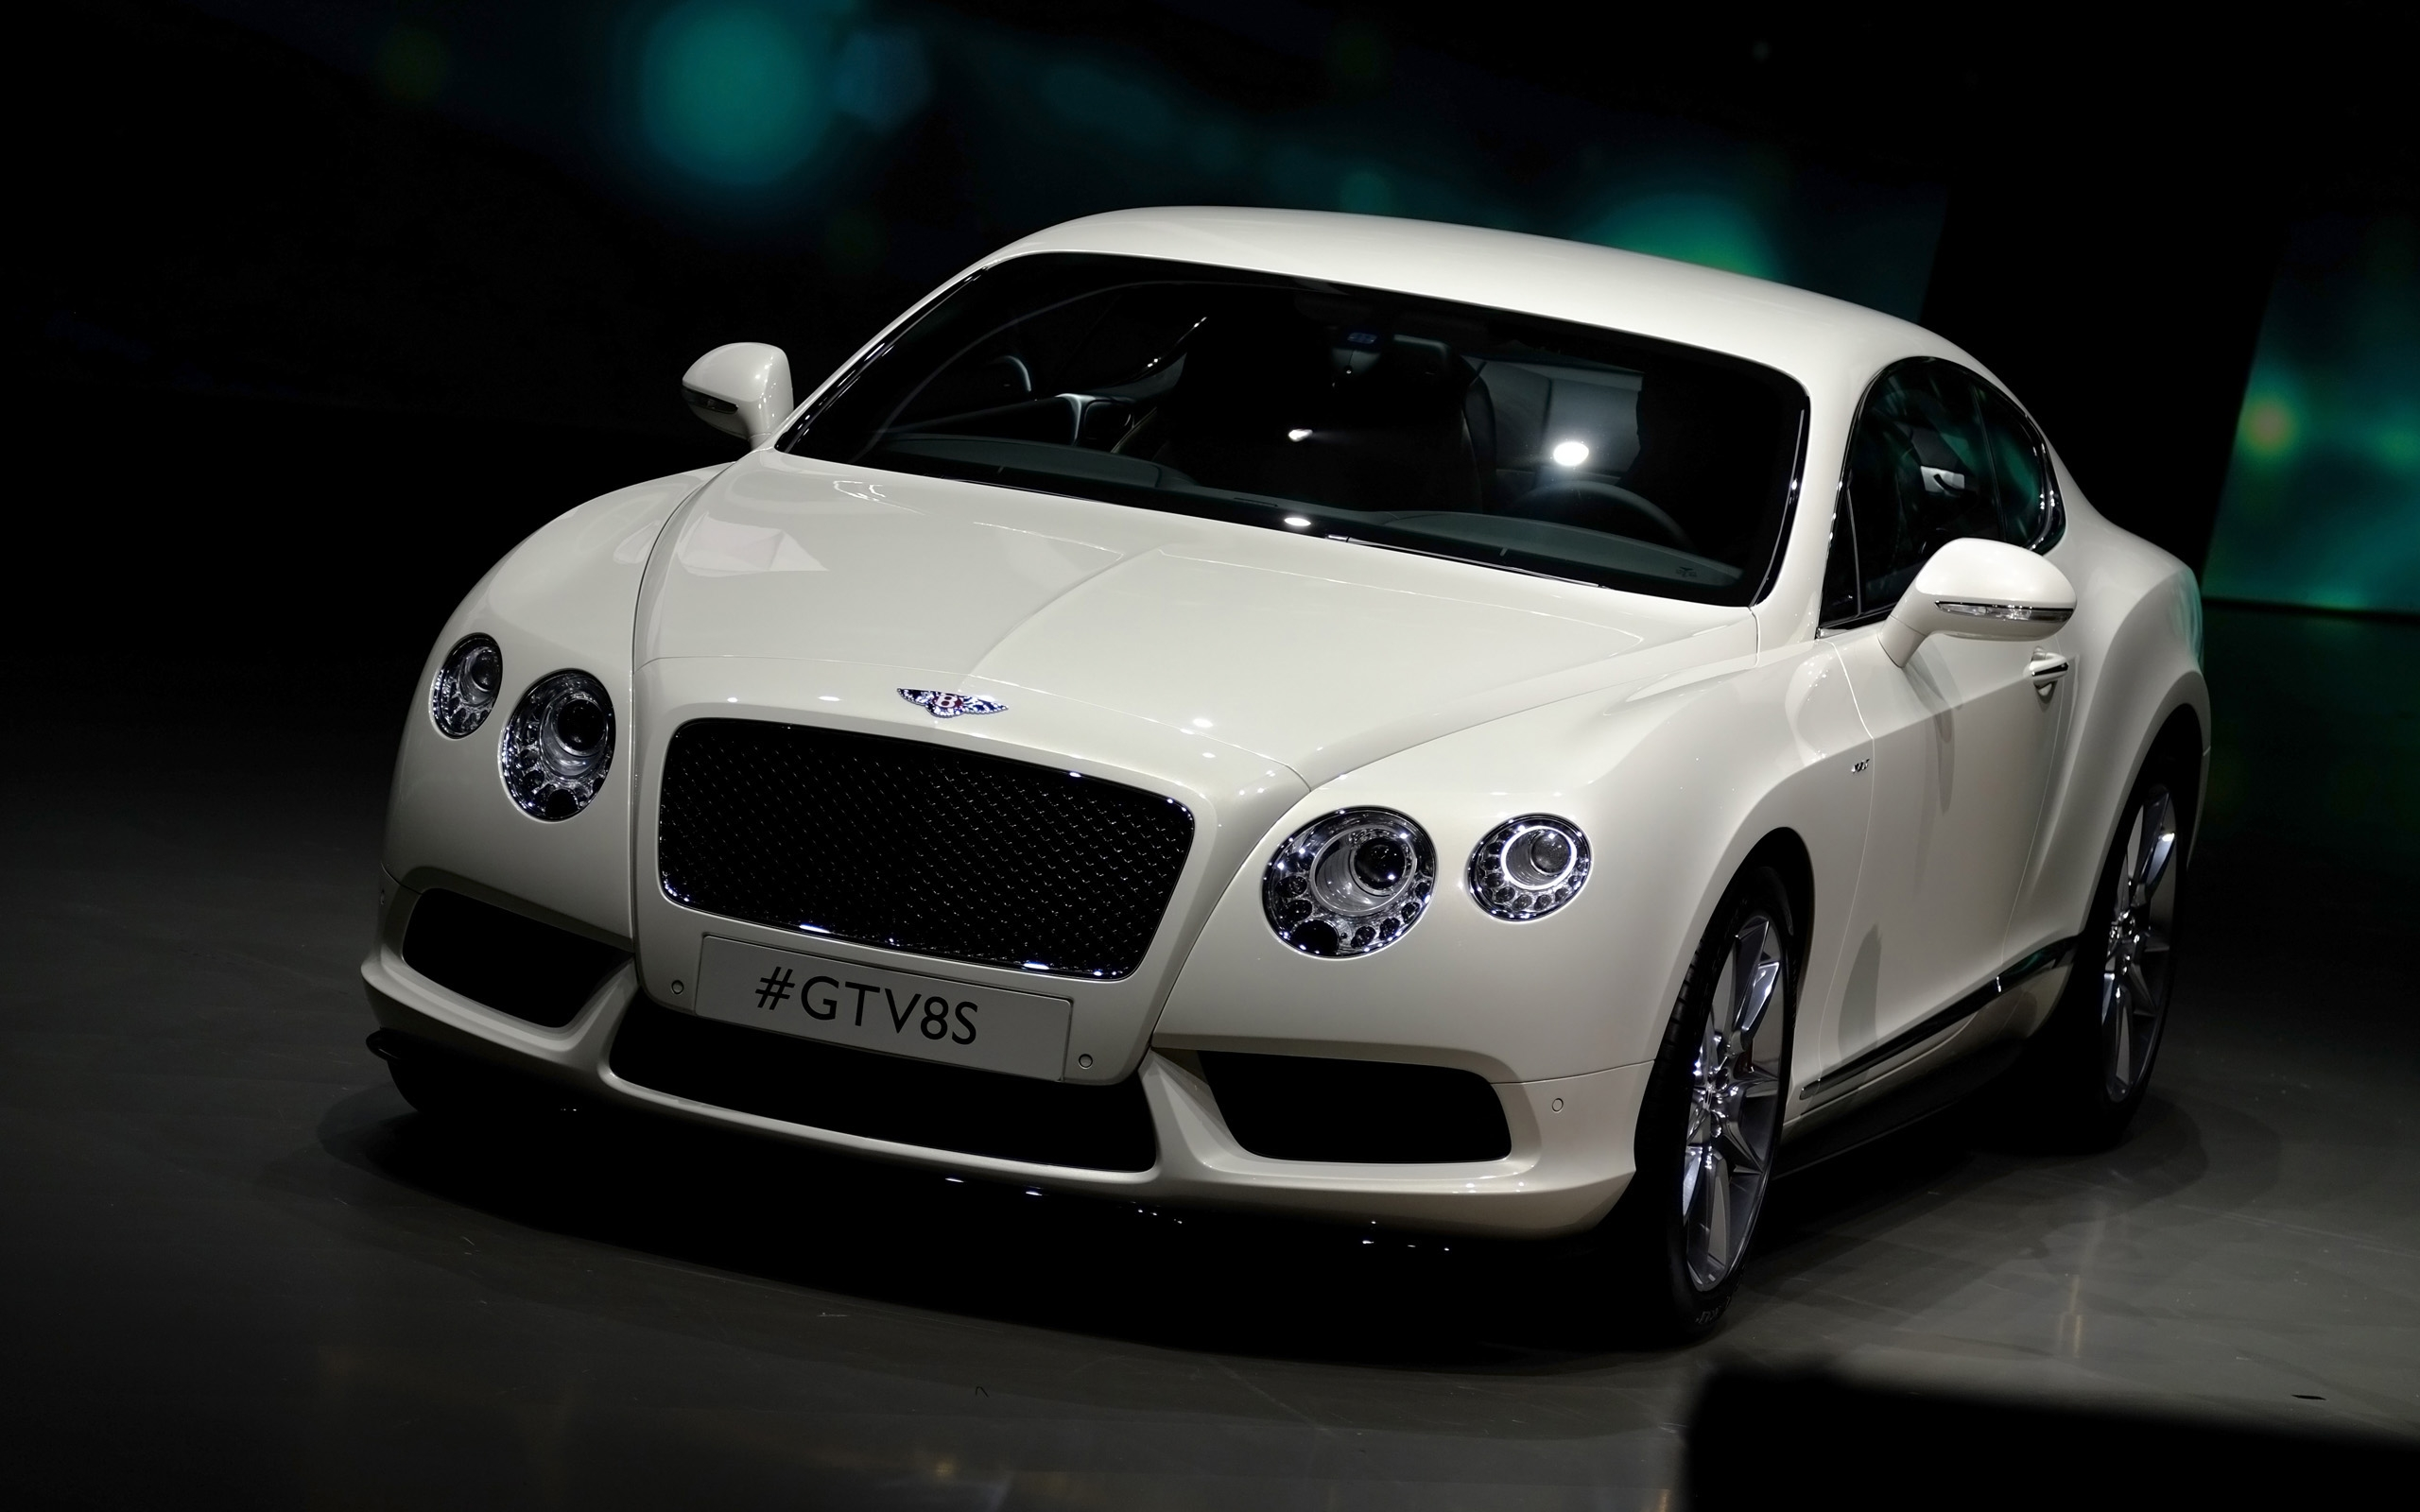 bentley-continental-v-s-at-iaa-frankfurt-motor-show-Bentley-Continental-V-wallpaper-wpc9001268